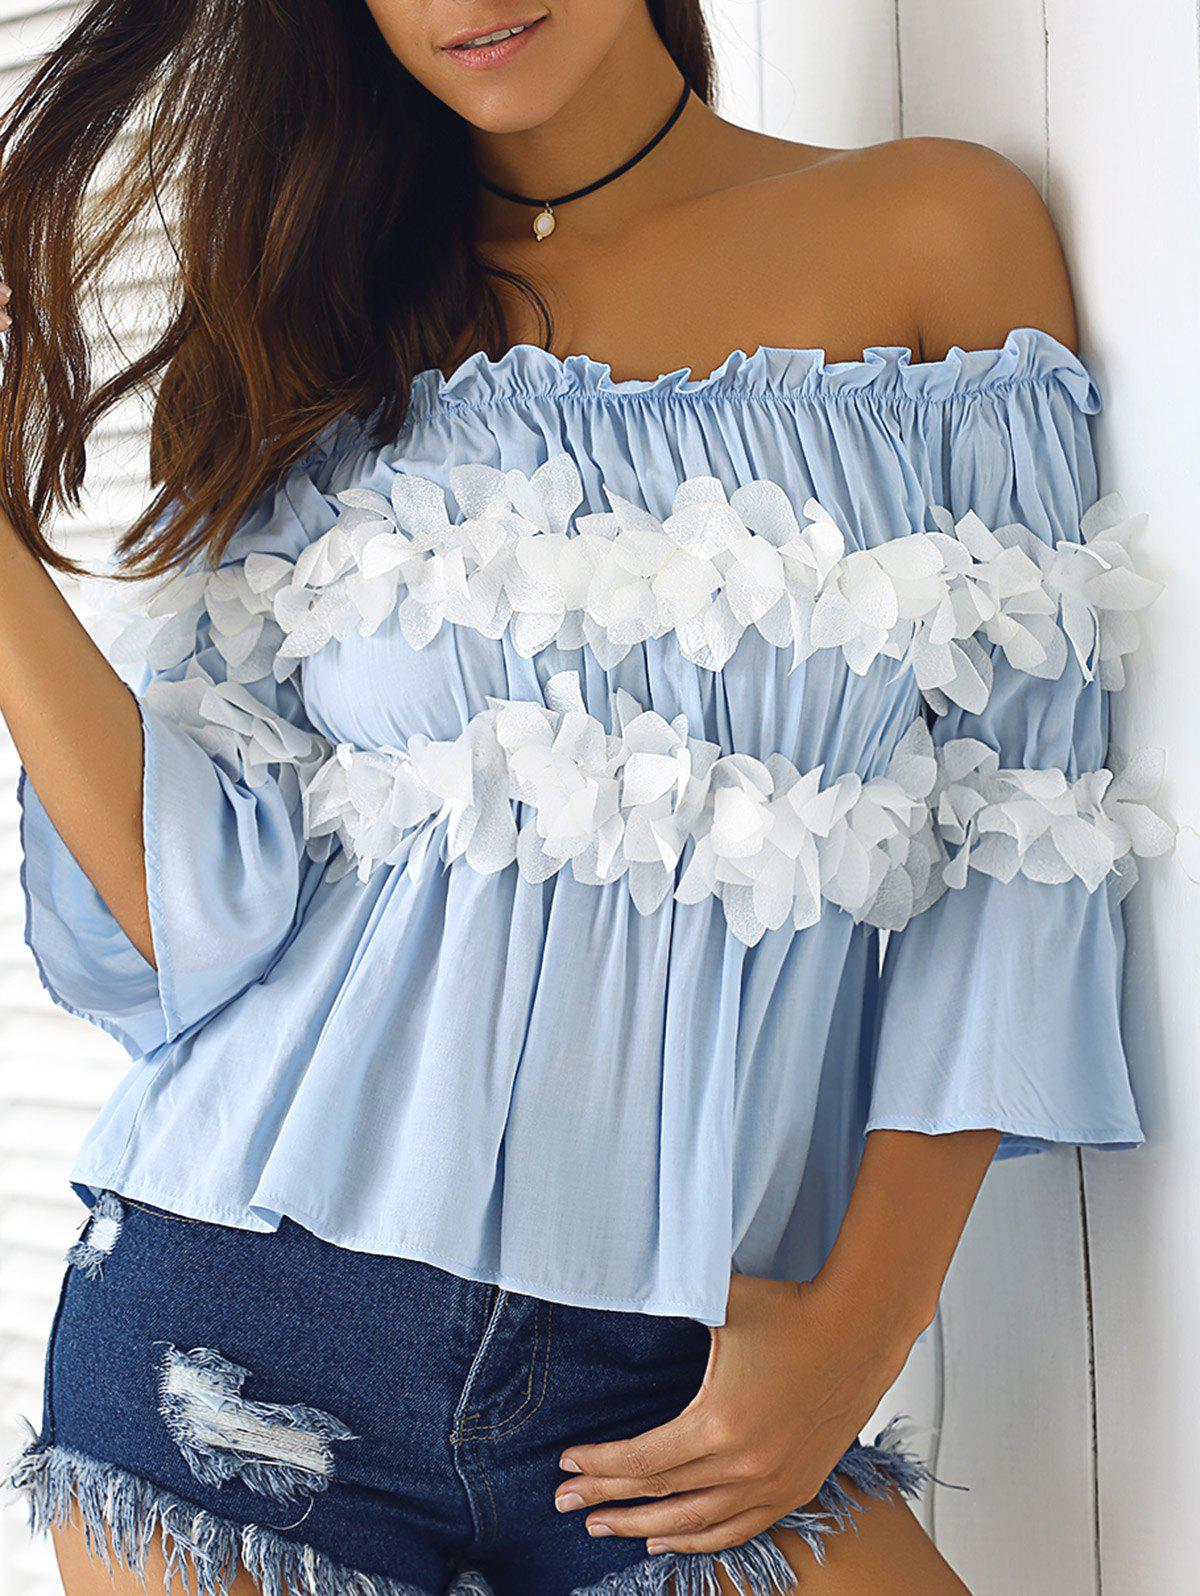 Graceful Women's  Off-The-Shoulder Flowers Bell Sleeves Blouse - LIGHT BLUE S